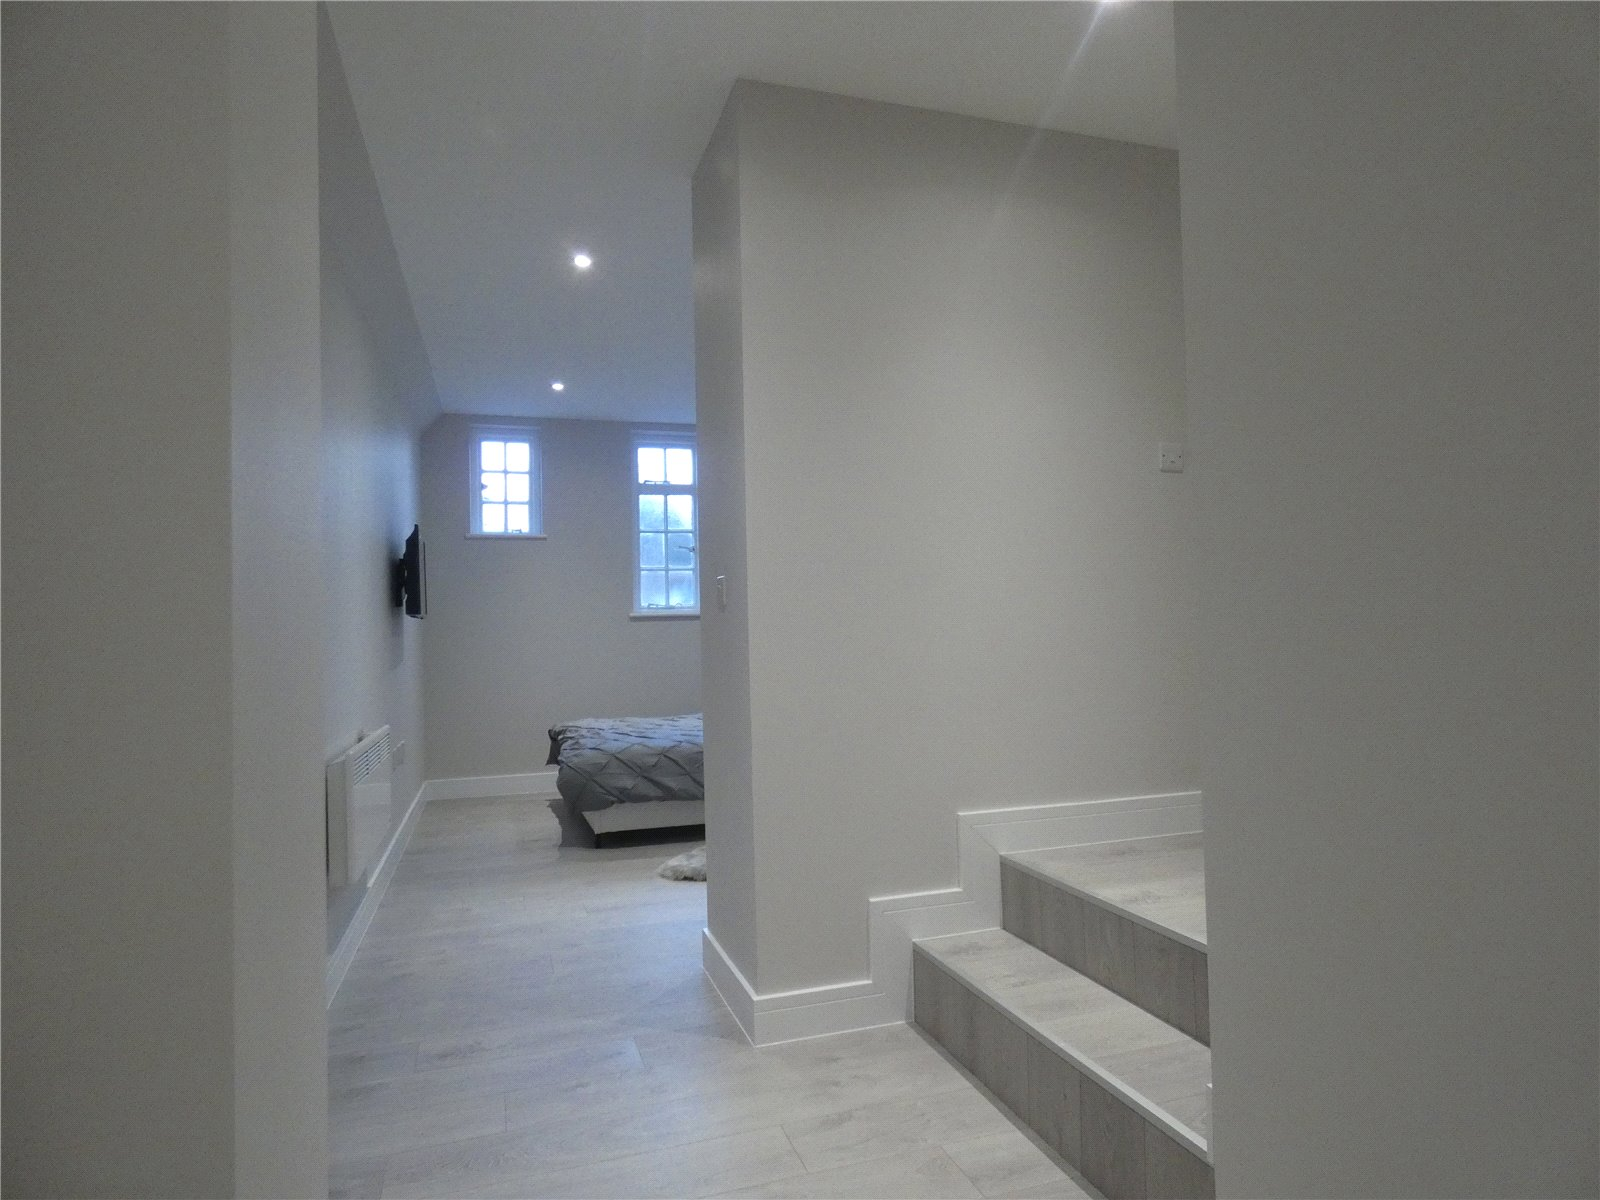 1 bed apartment to rent in Whetstone, N20 9HW 2